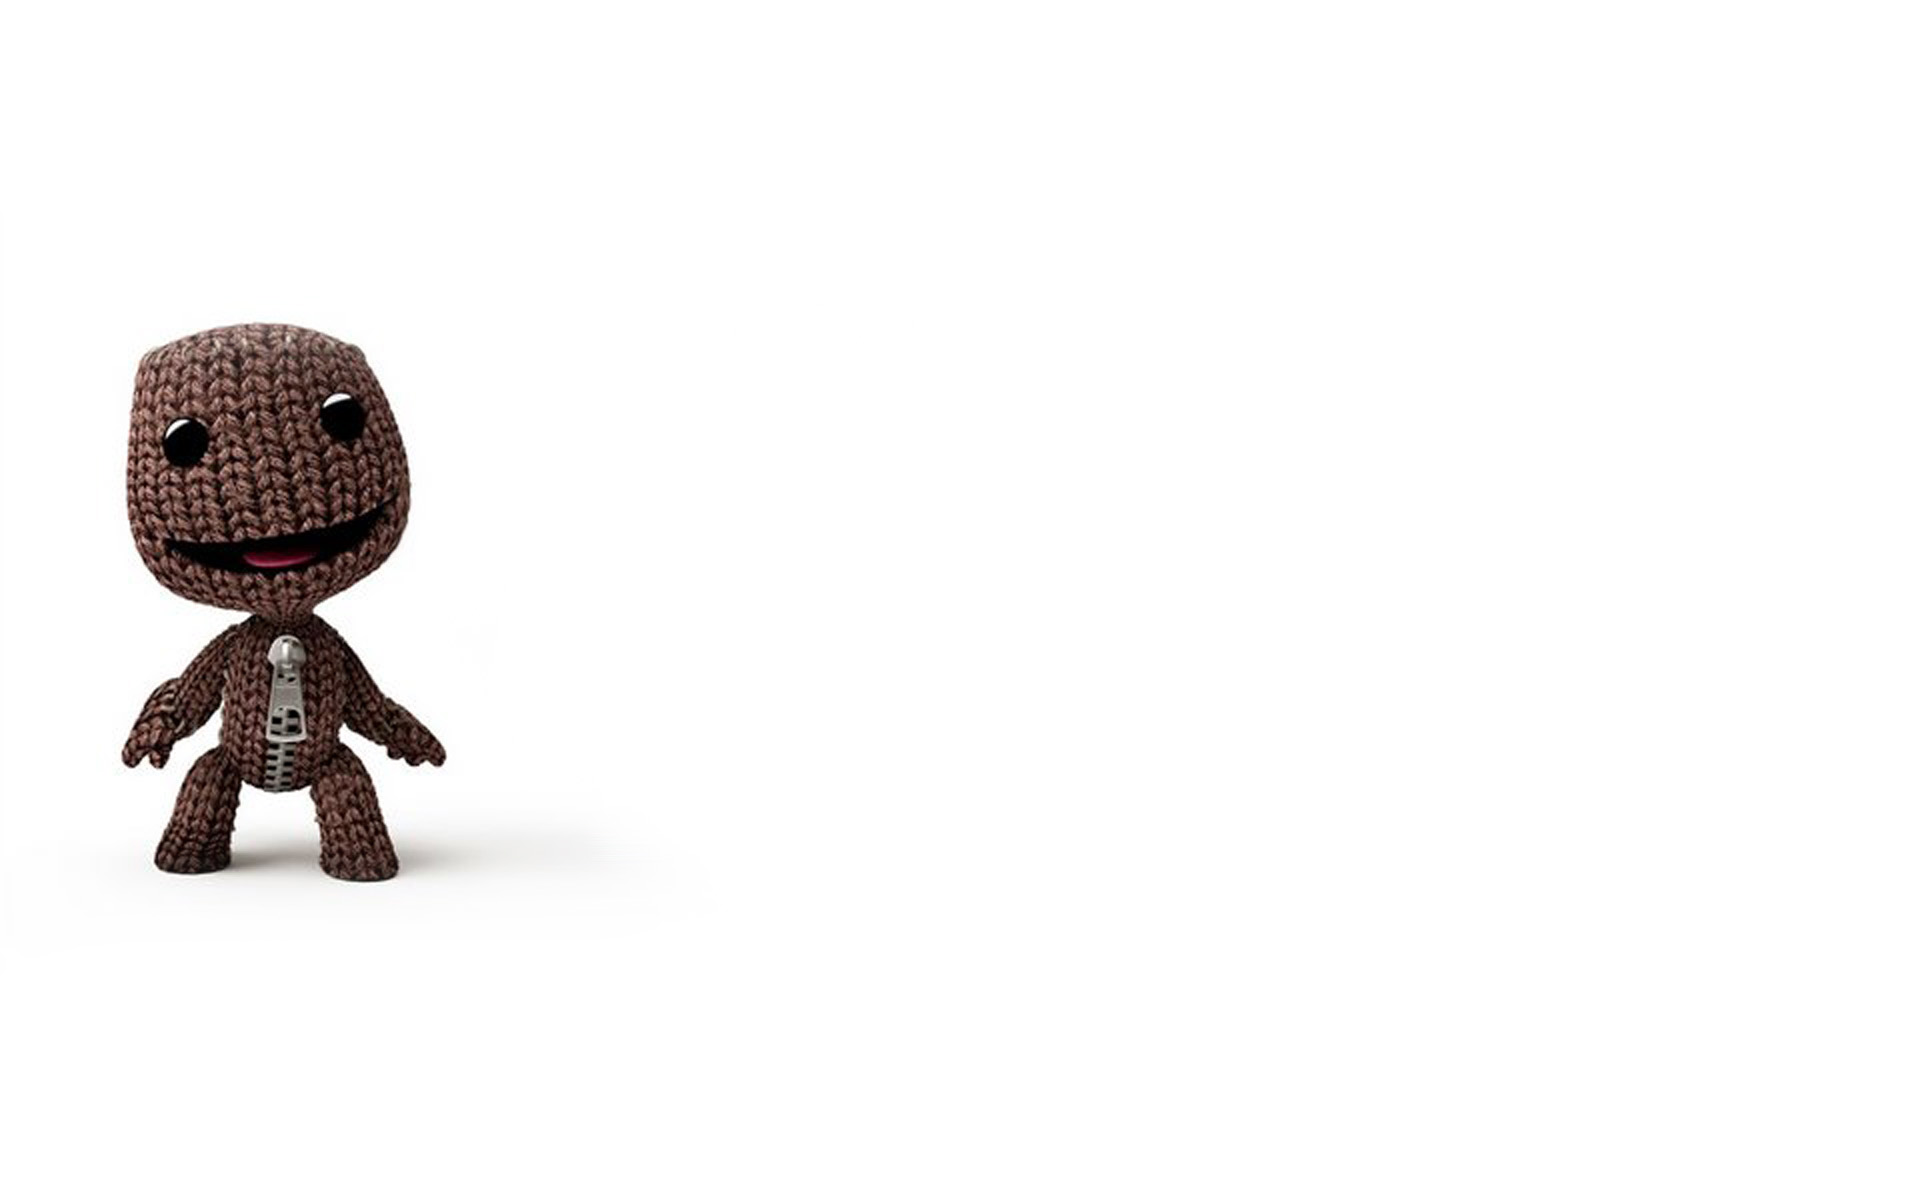 sackboy wallpaper A4